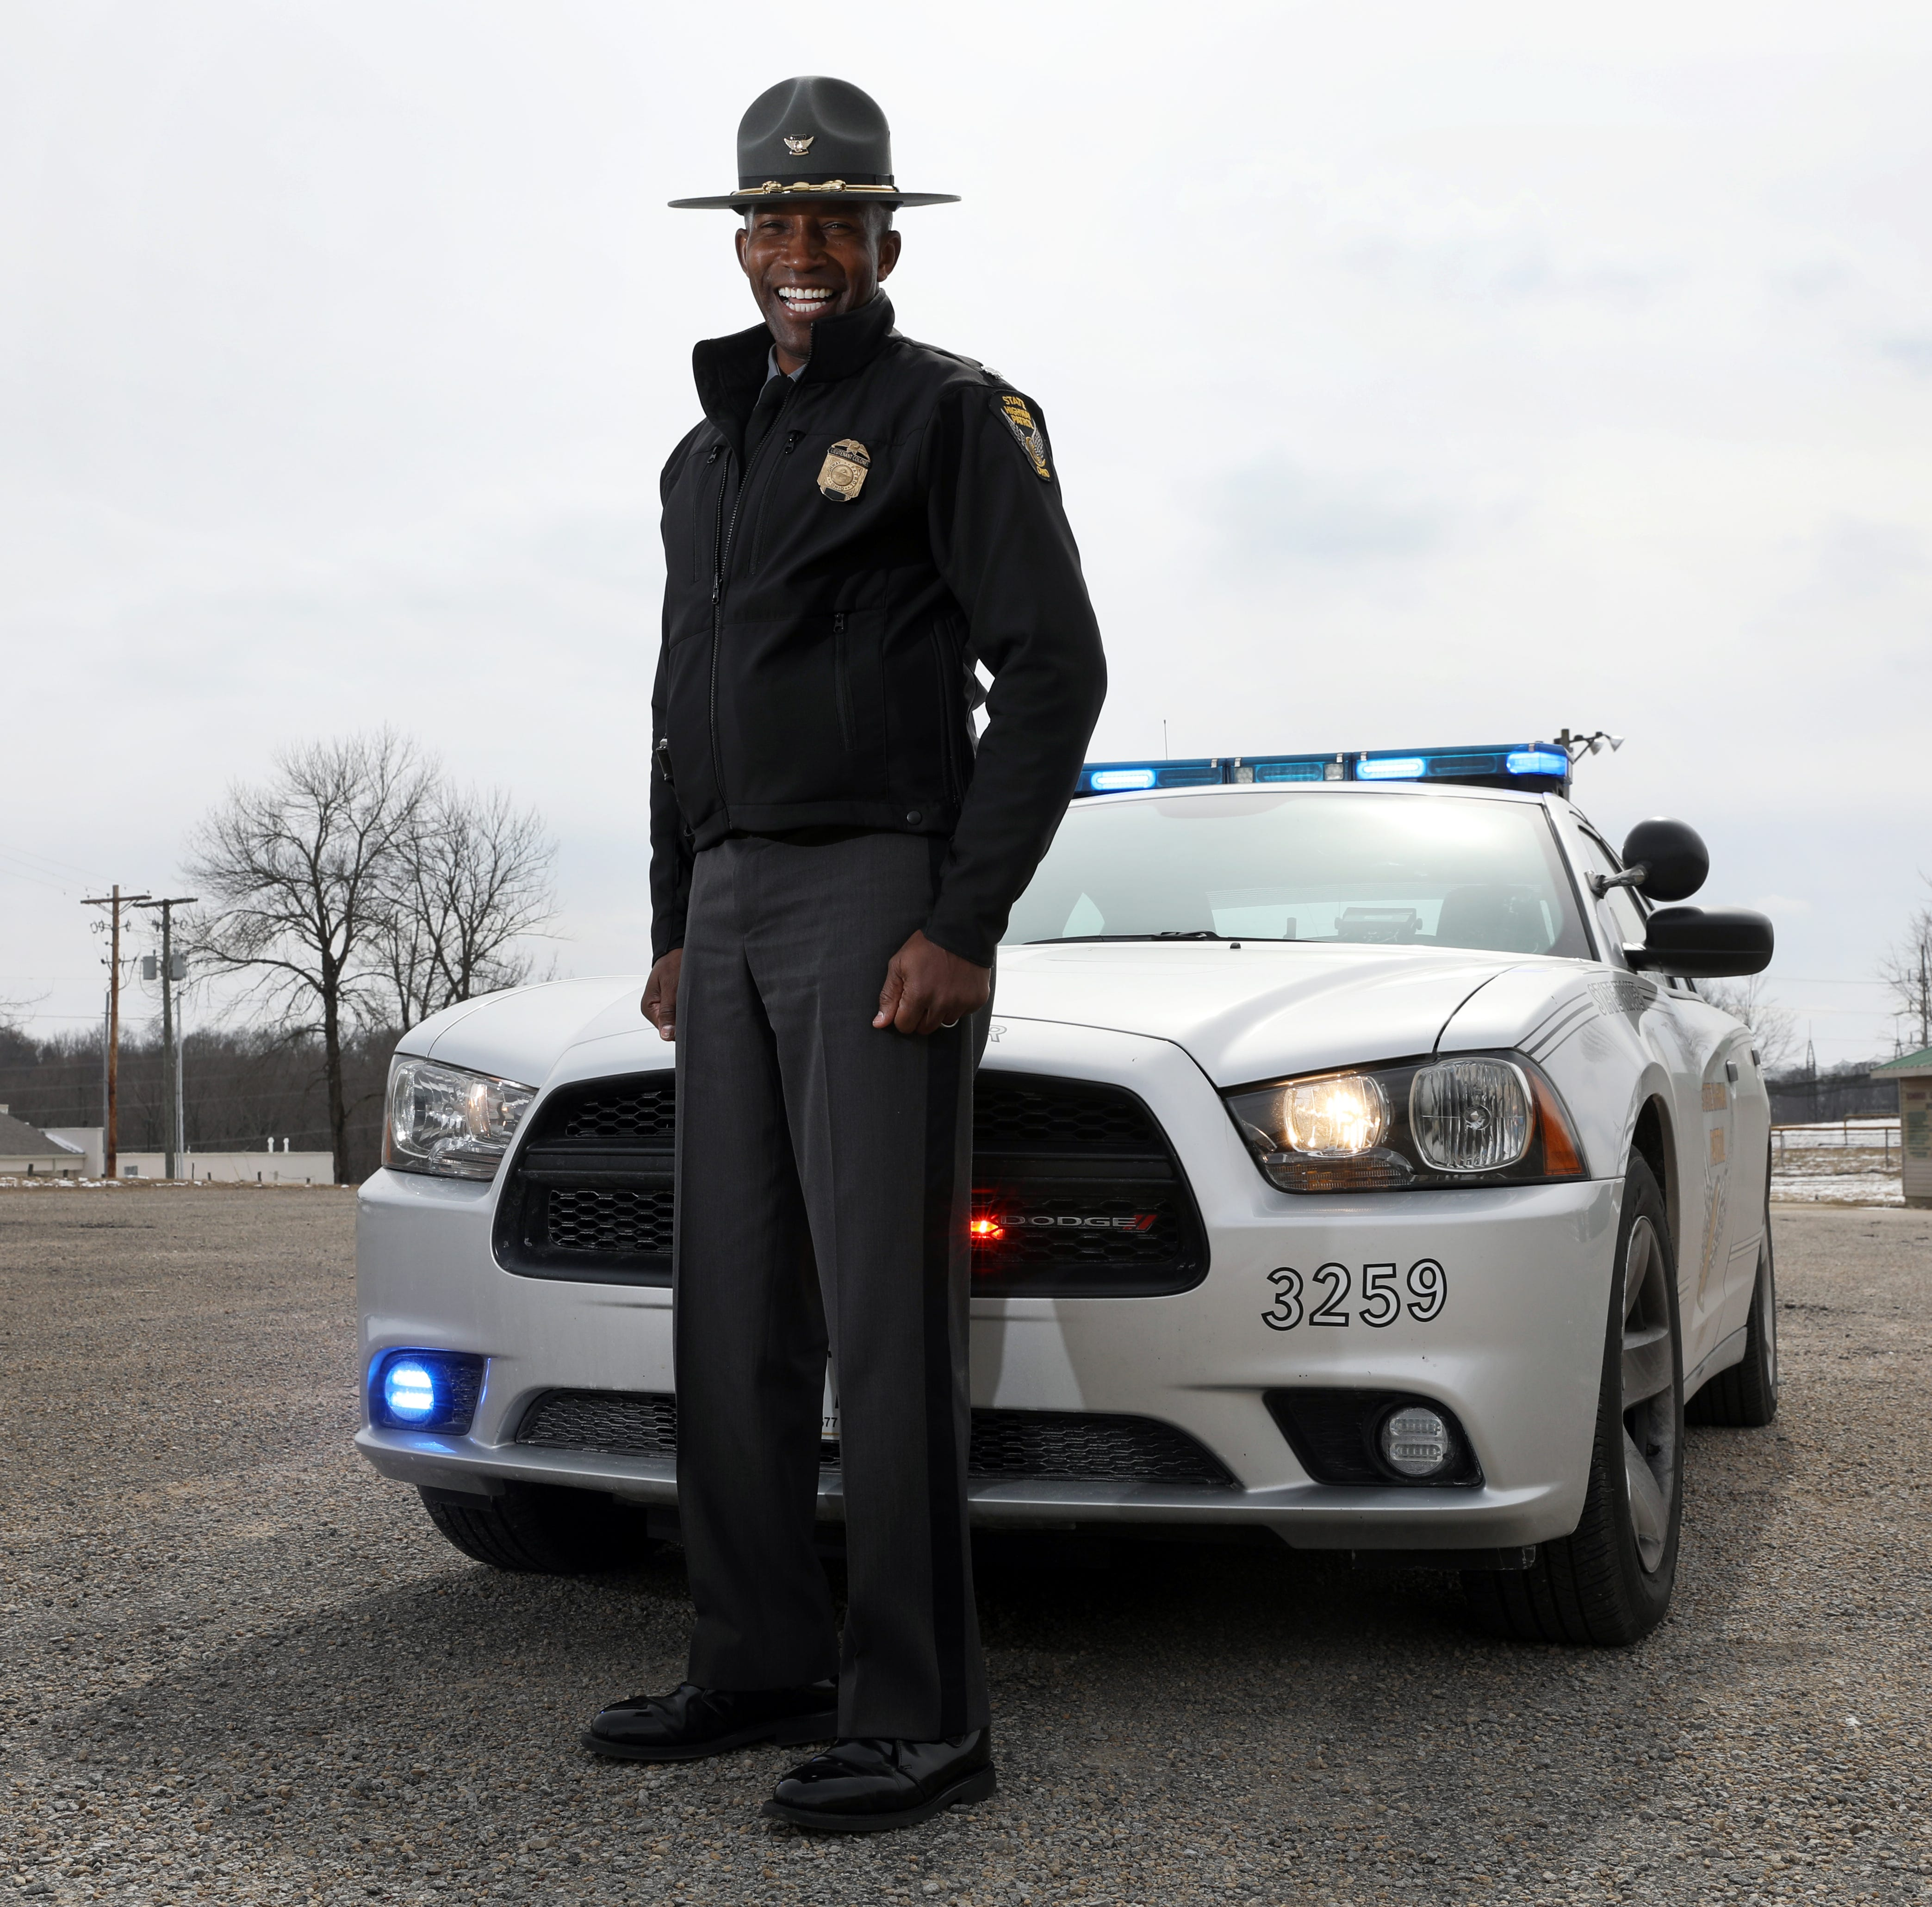 From humble beginnings to the State Patrol's top spot